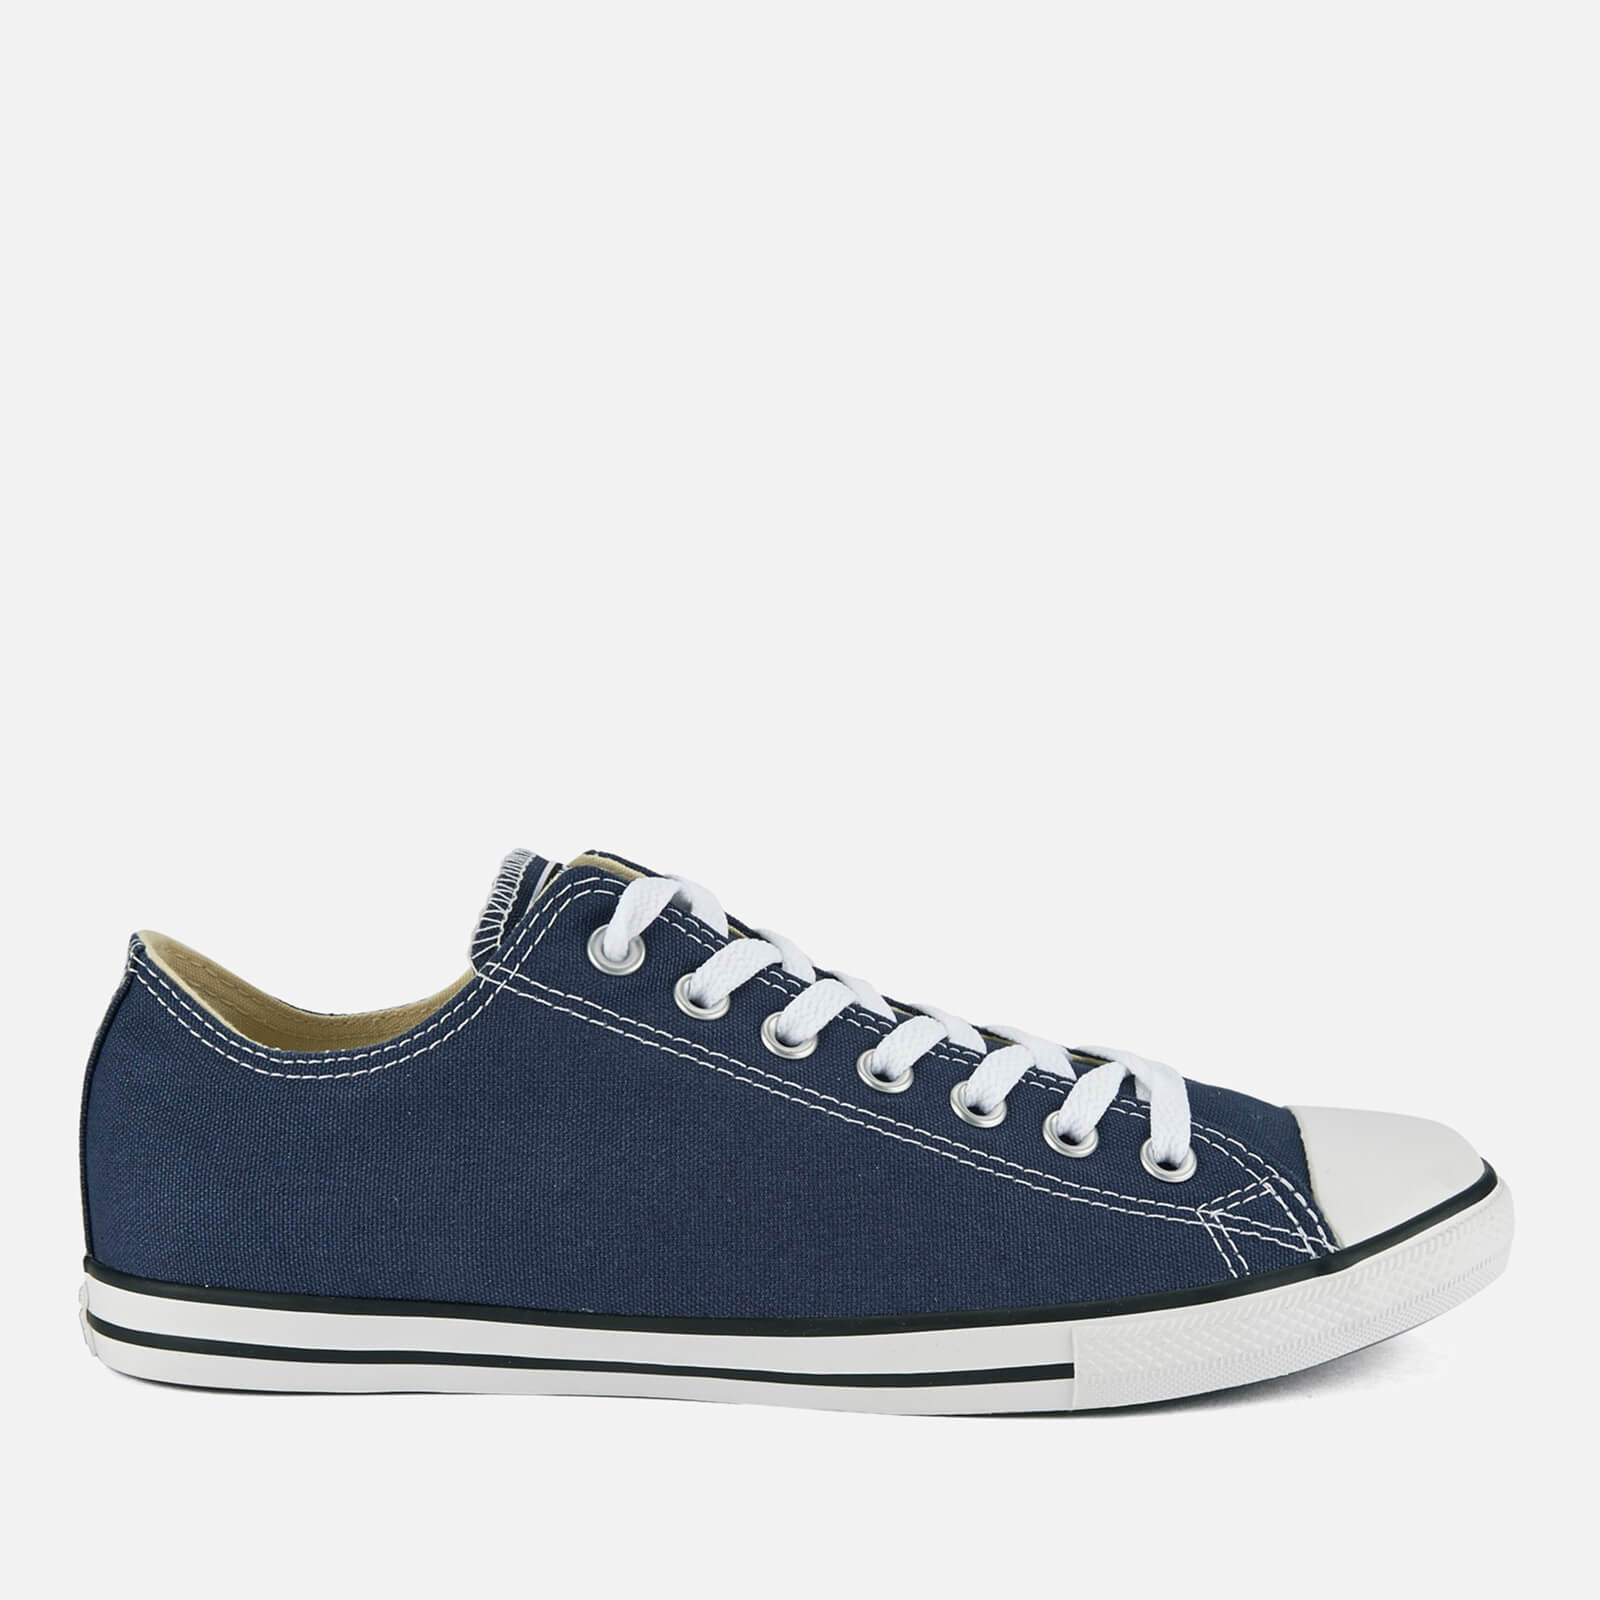 7a09a12cbcb0 Converse Men s Chuck Taylor All Star Lean OX Trainers - Navy - Free UK  Delivery over £50